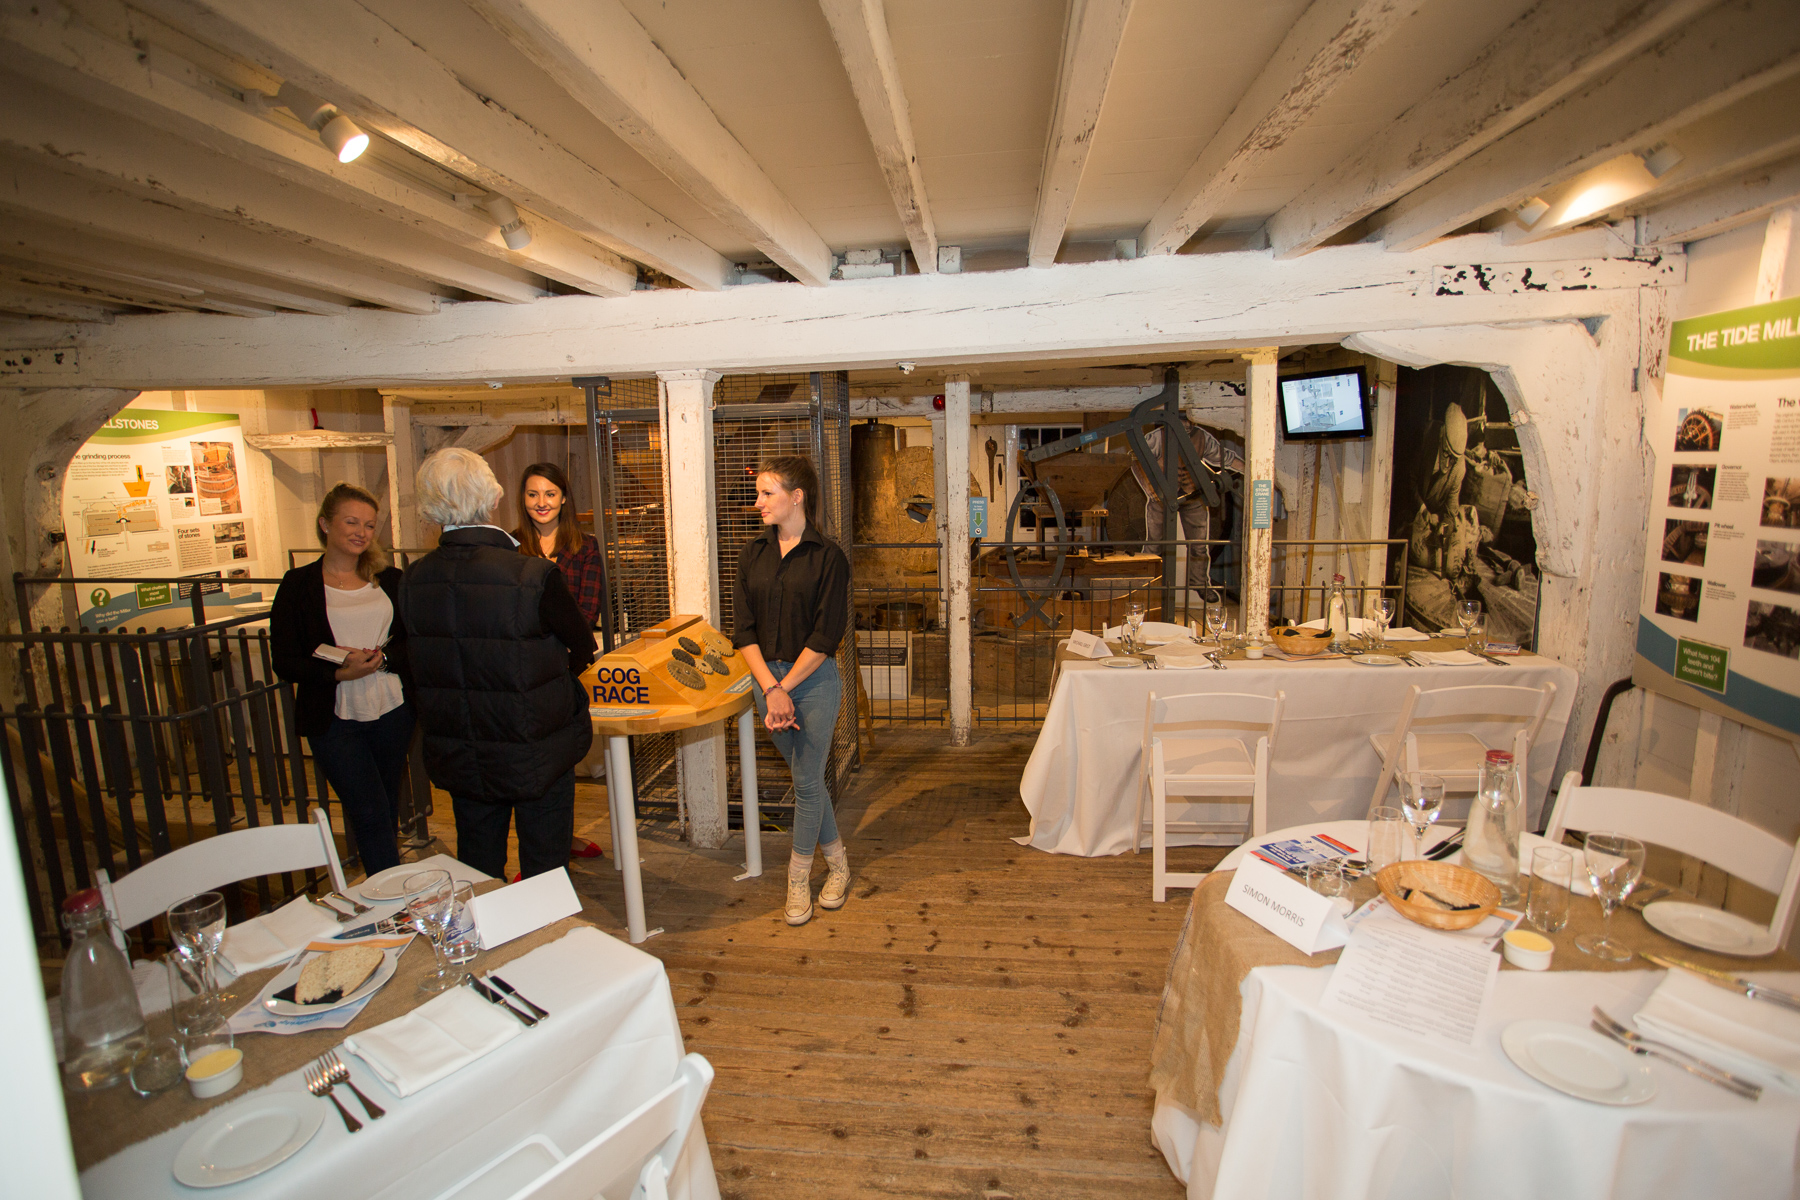 'Pop up' restaurant by Bespoke at the Tide Mill